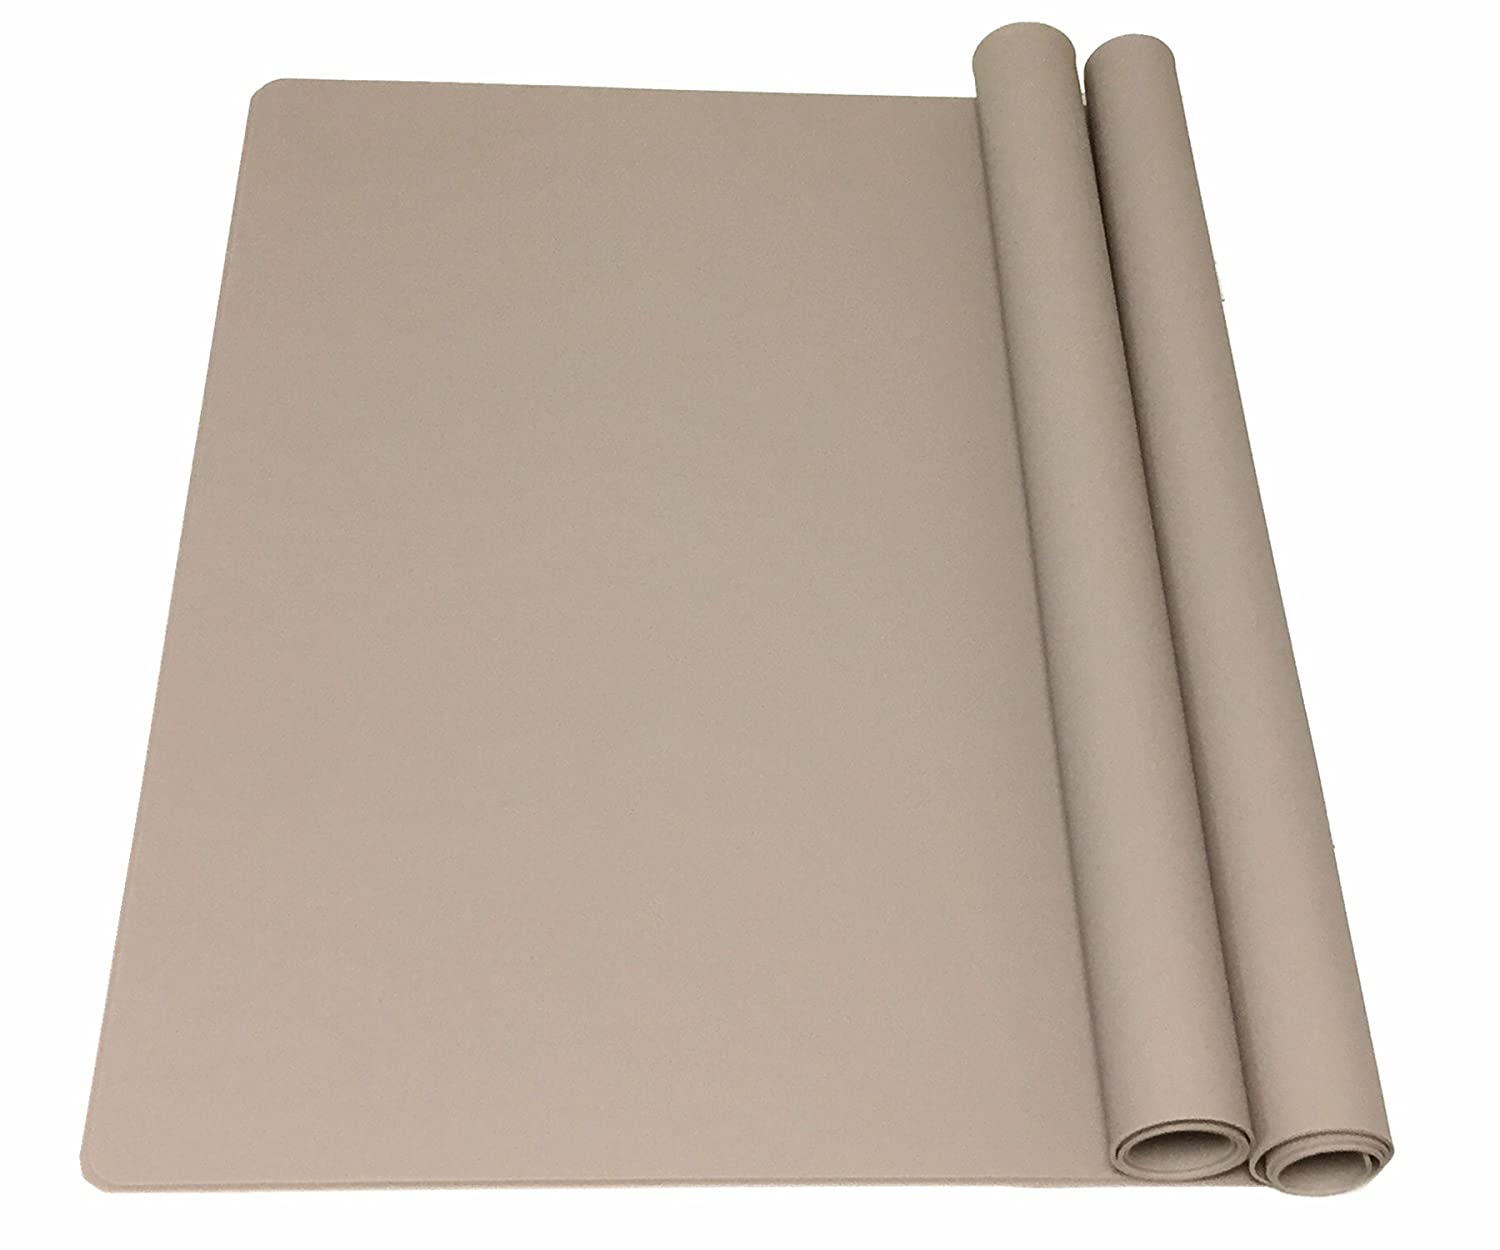 EPHome 2Pack Extra Large Multipurpose Silicone Nonstick Pastry Mat, Heat Resistant Nonskid Table Mat, Countertop Protector, 23.6''15.75'' (Taupe)